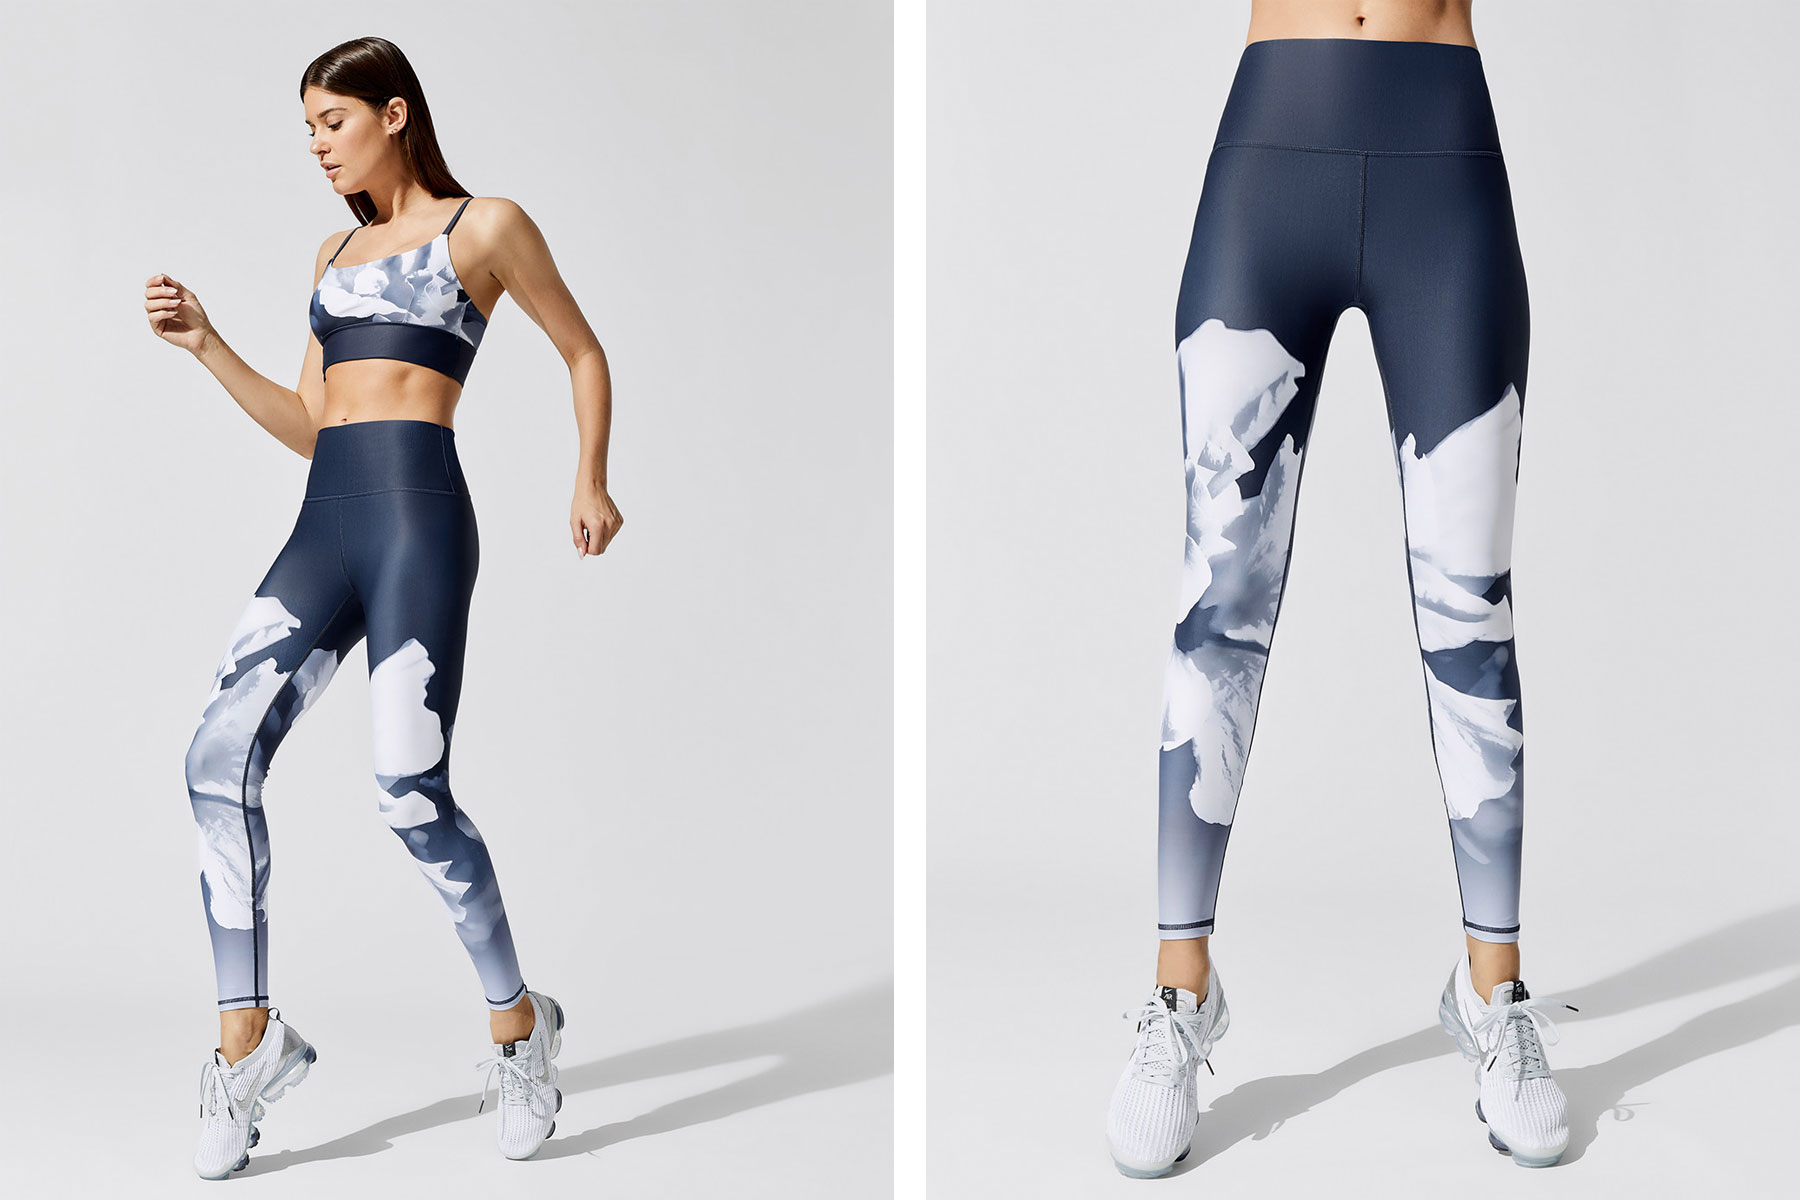 Blue patterned leggings and sports bra